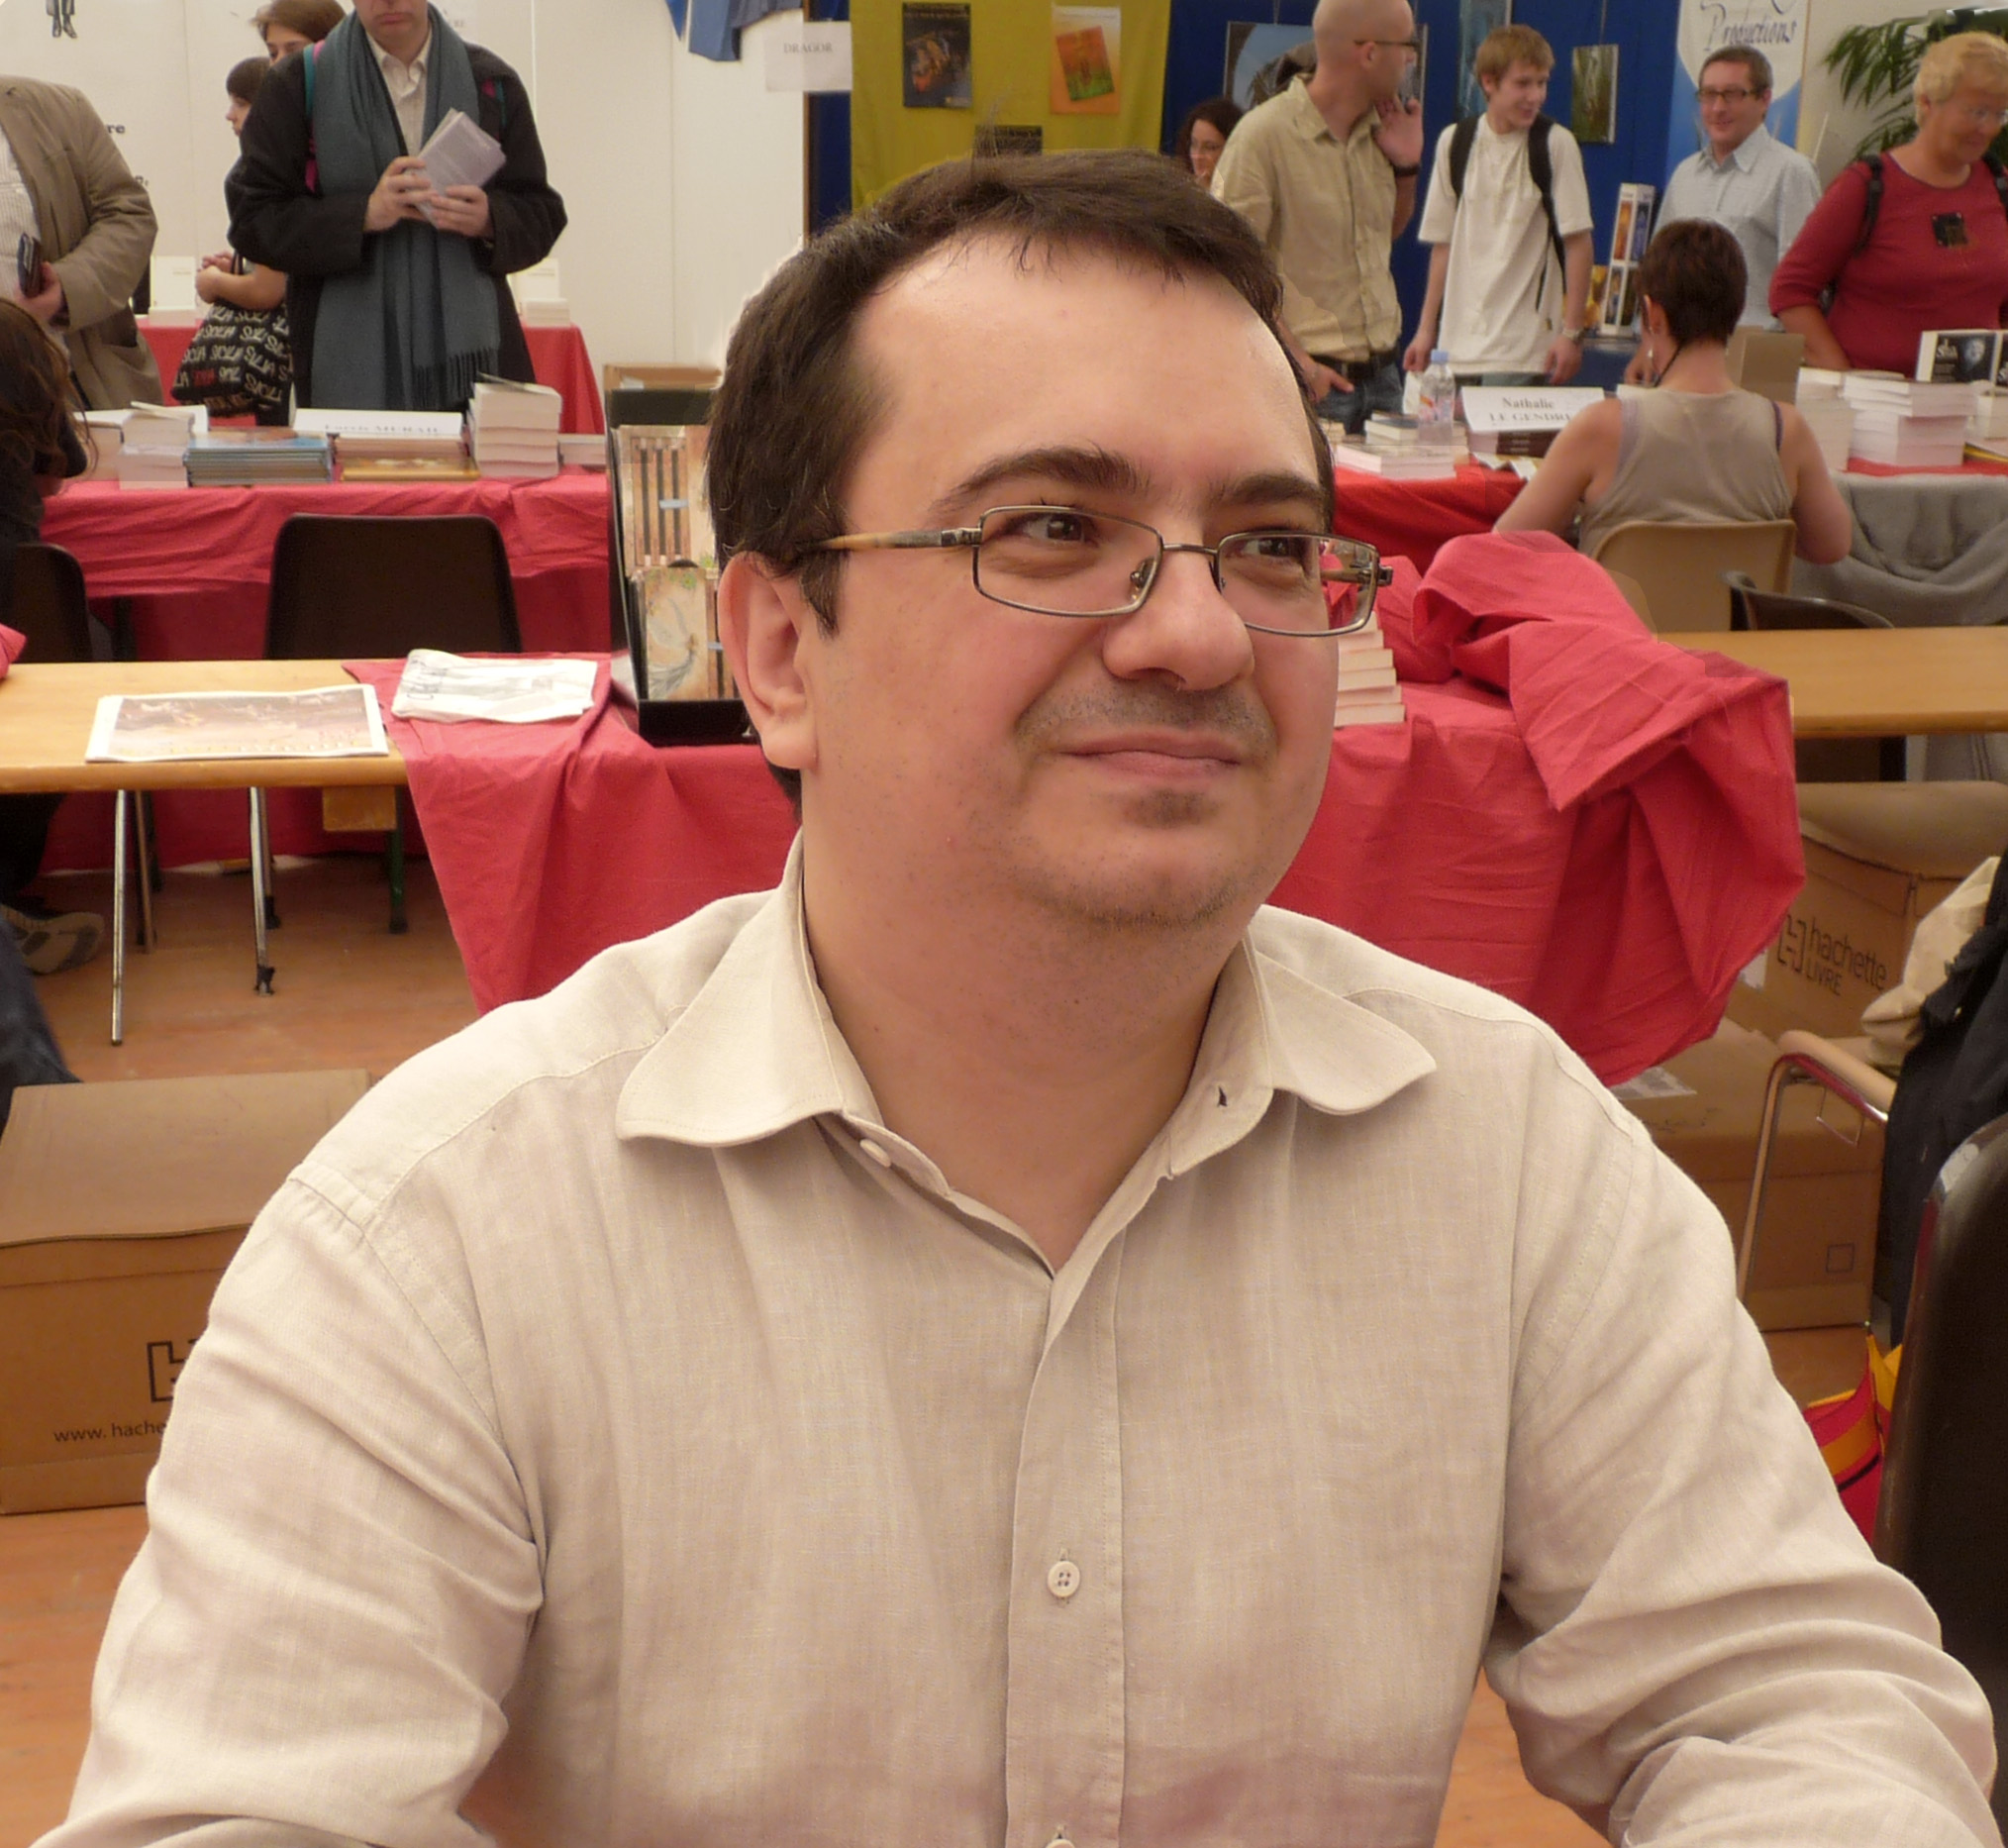 Pevel at Imaginales 2010.